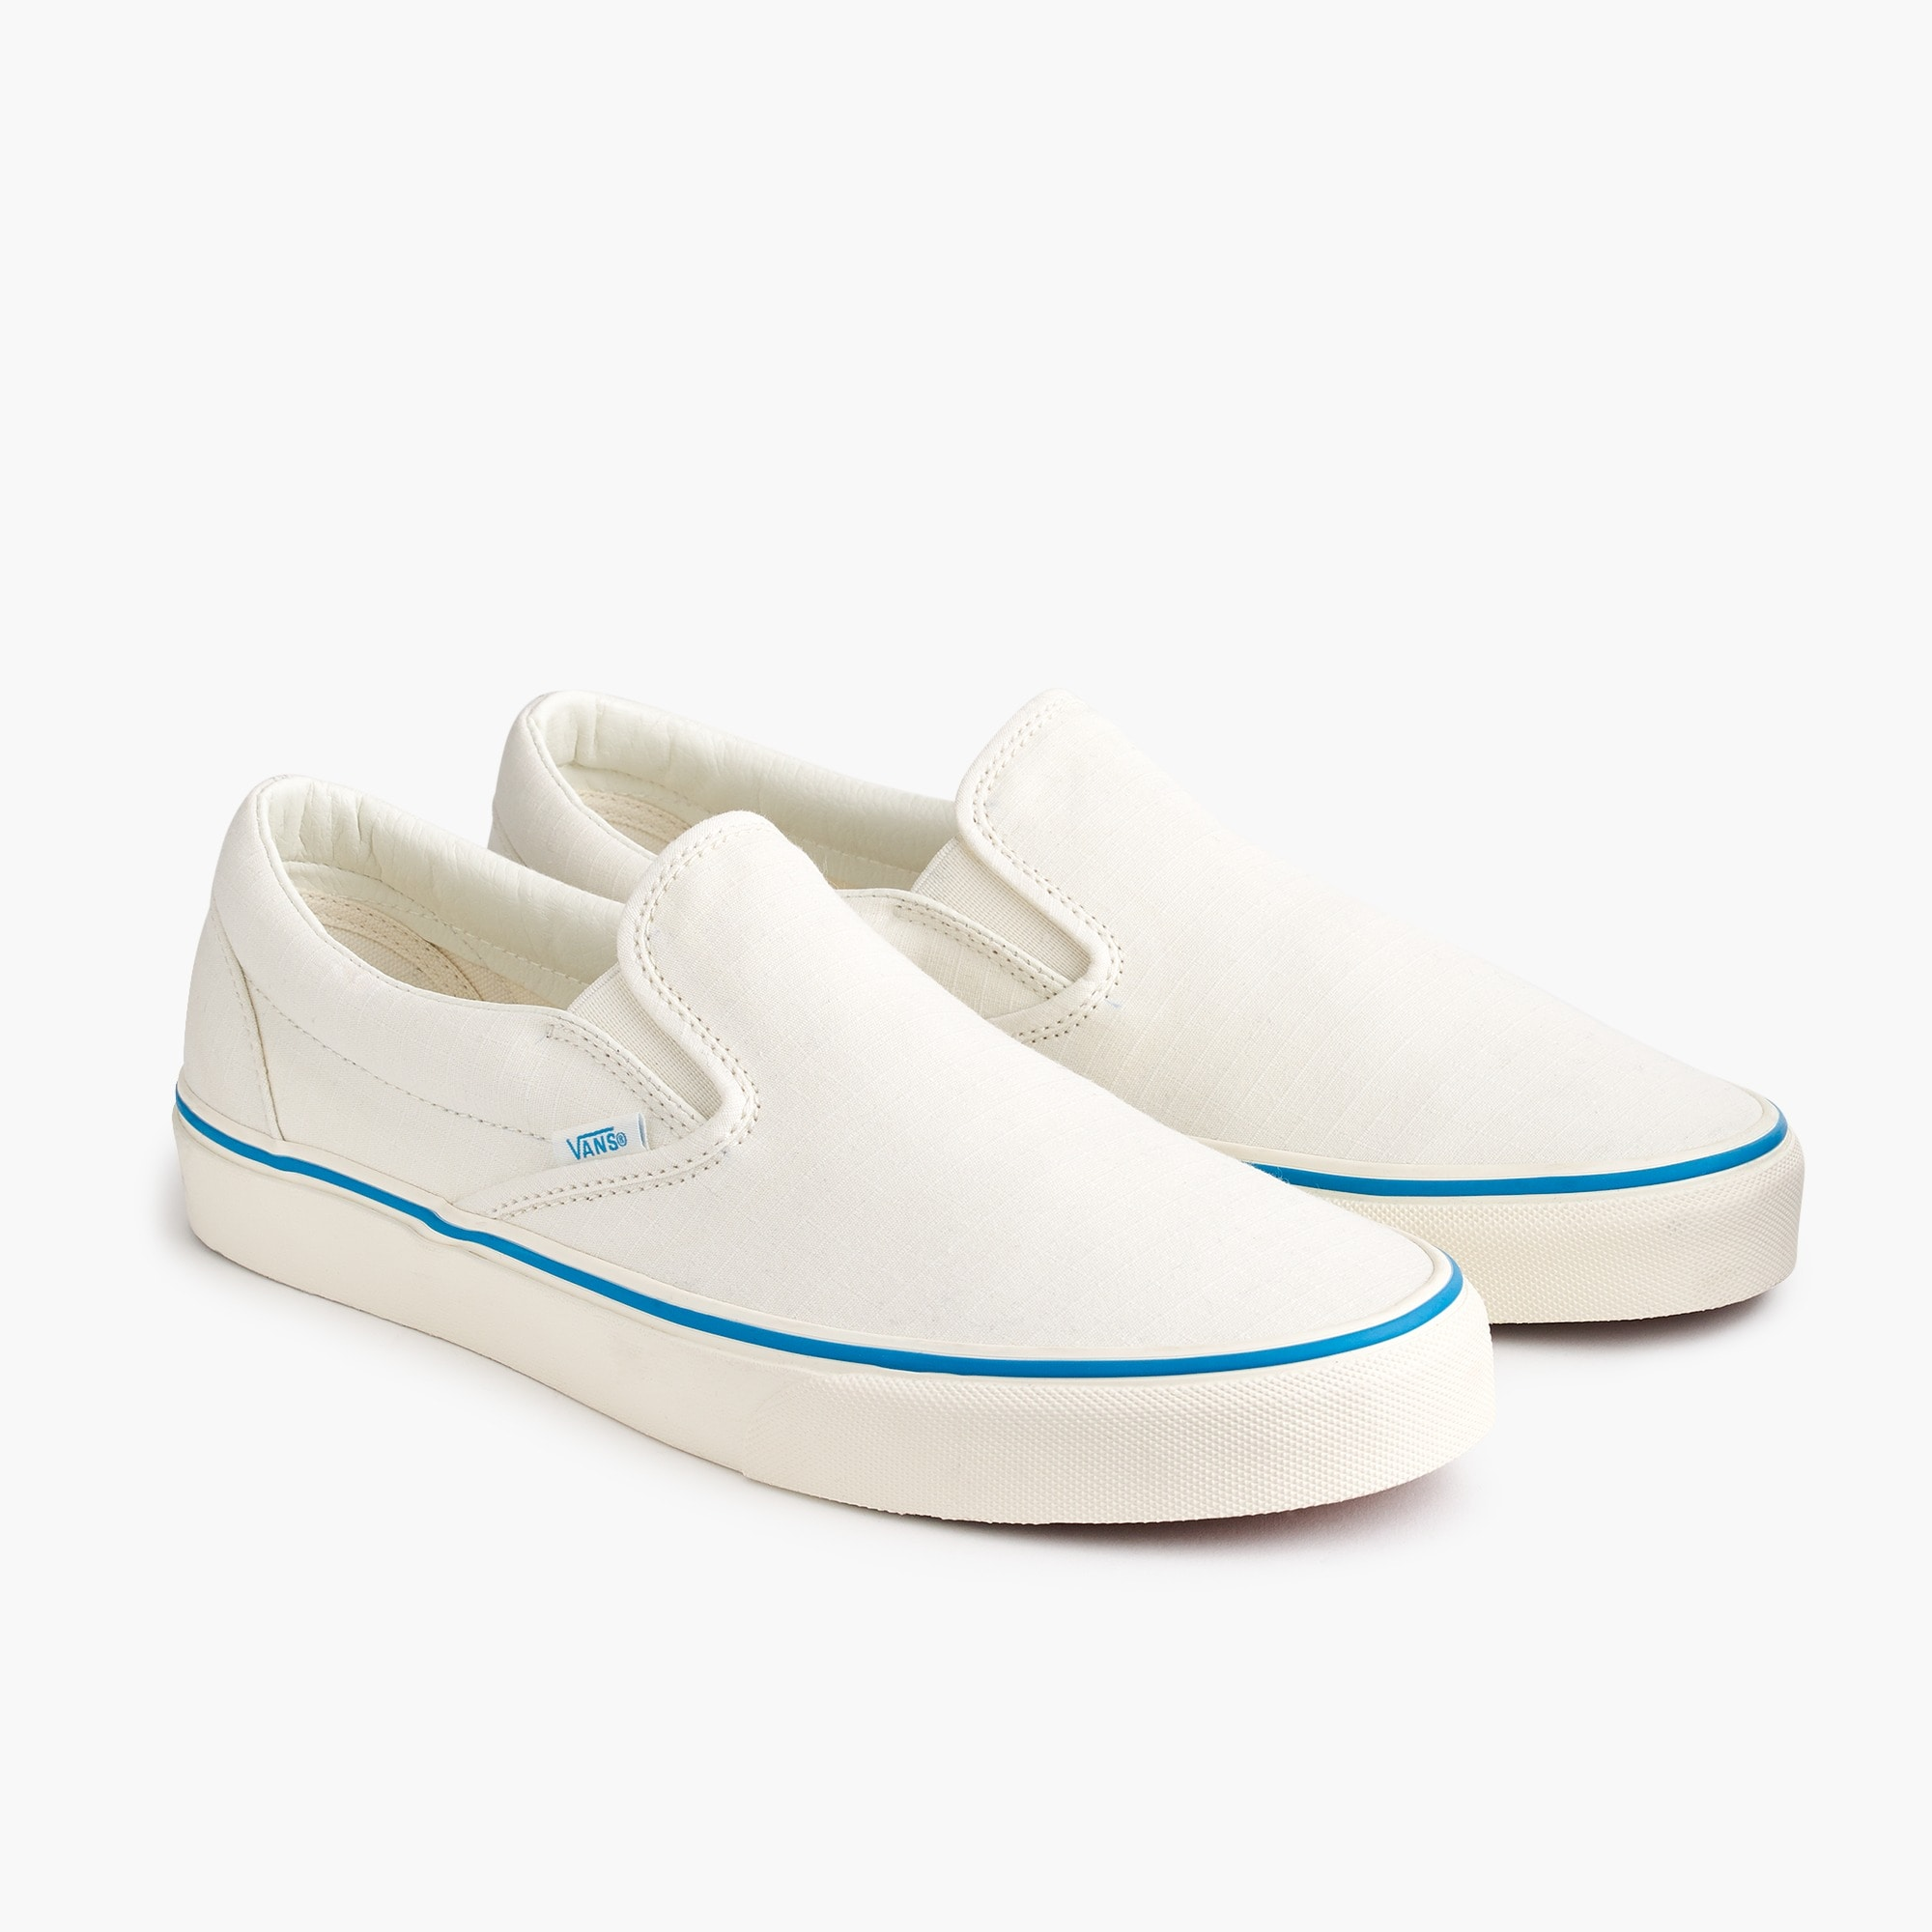 mens Vans® for J.Crew slip-on sneakers in ripstop cotton